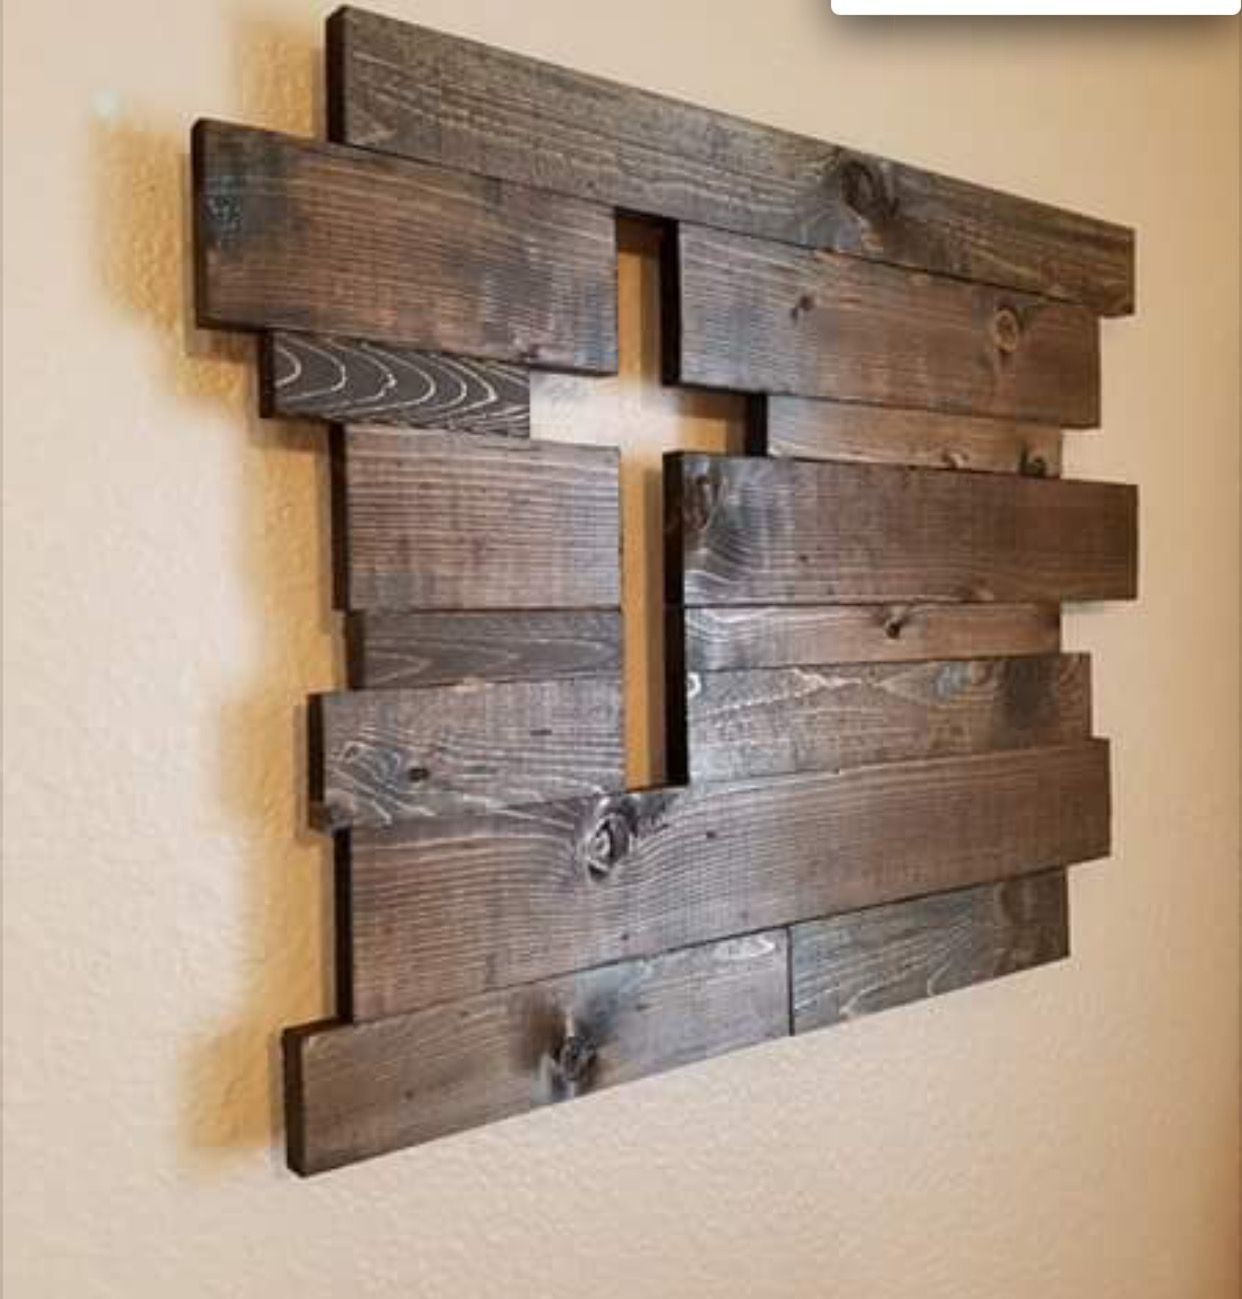 Barn Wood Ideas: Pin By House Of Hobbies On Pallet Hobby Ideas